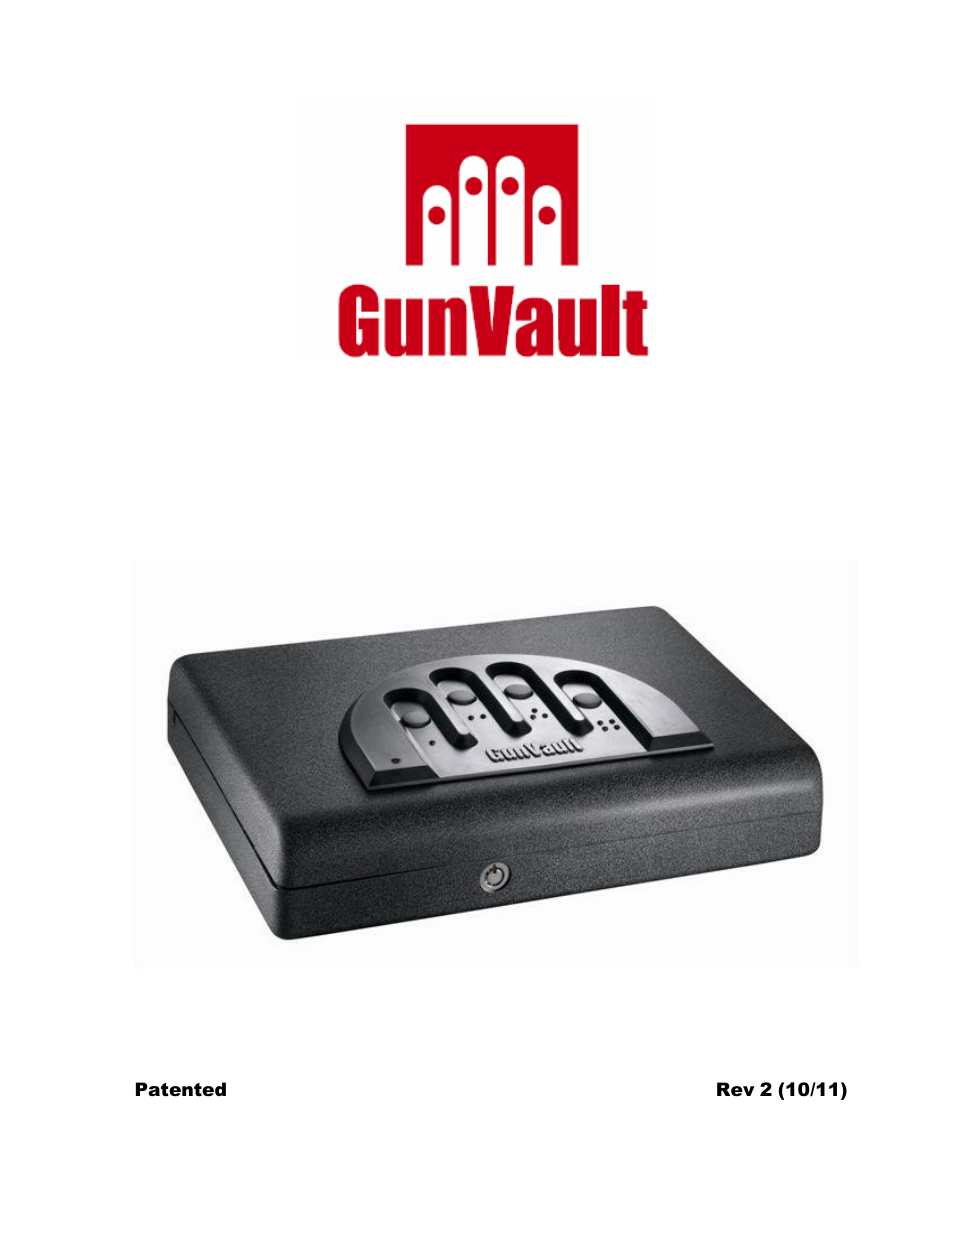 gunvault mv 500 user manual 8 pages rh manualsdir com  GunVault Pistol Safe